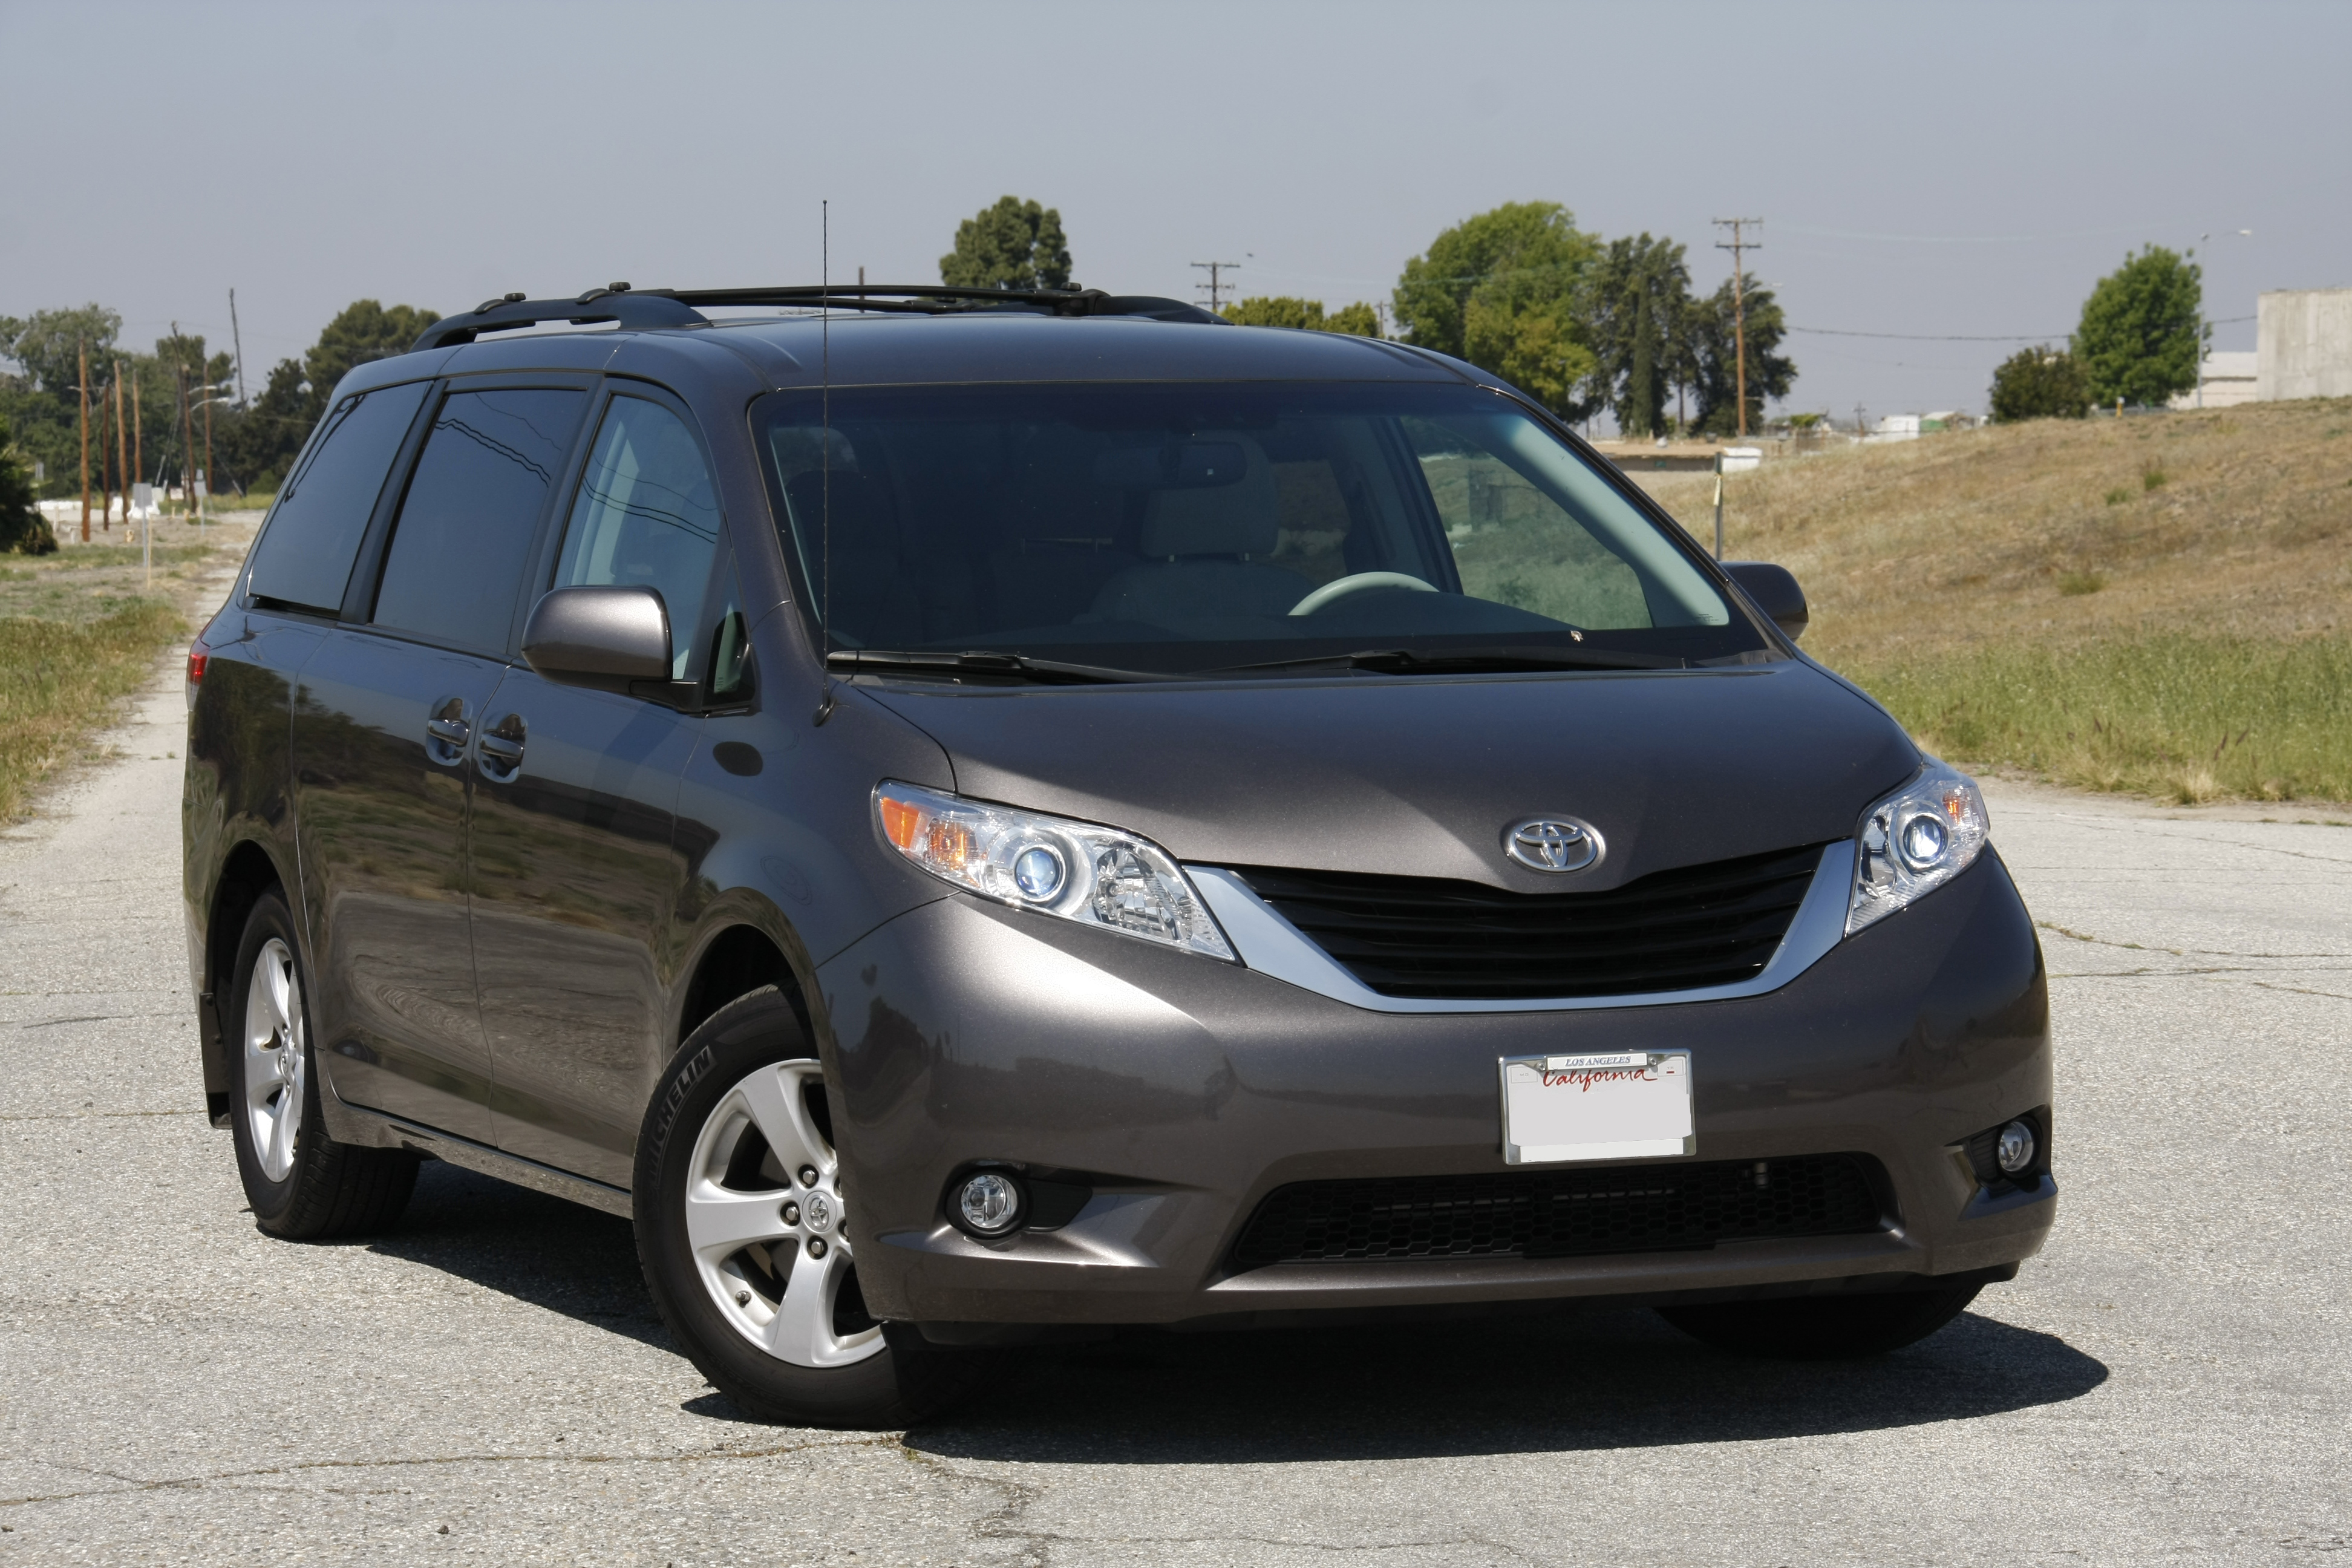 2006 Toyota Sienna ii  pictures information and specs  Auto